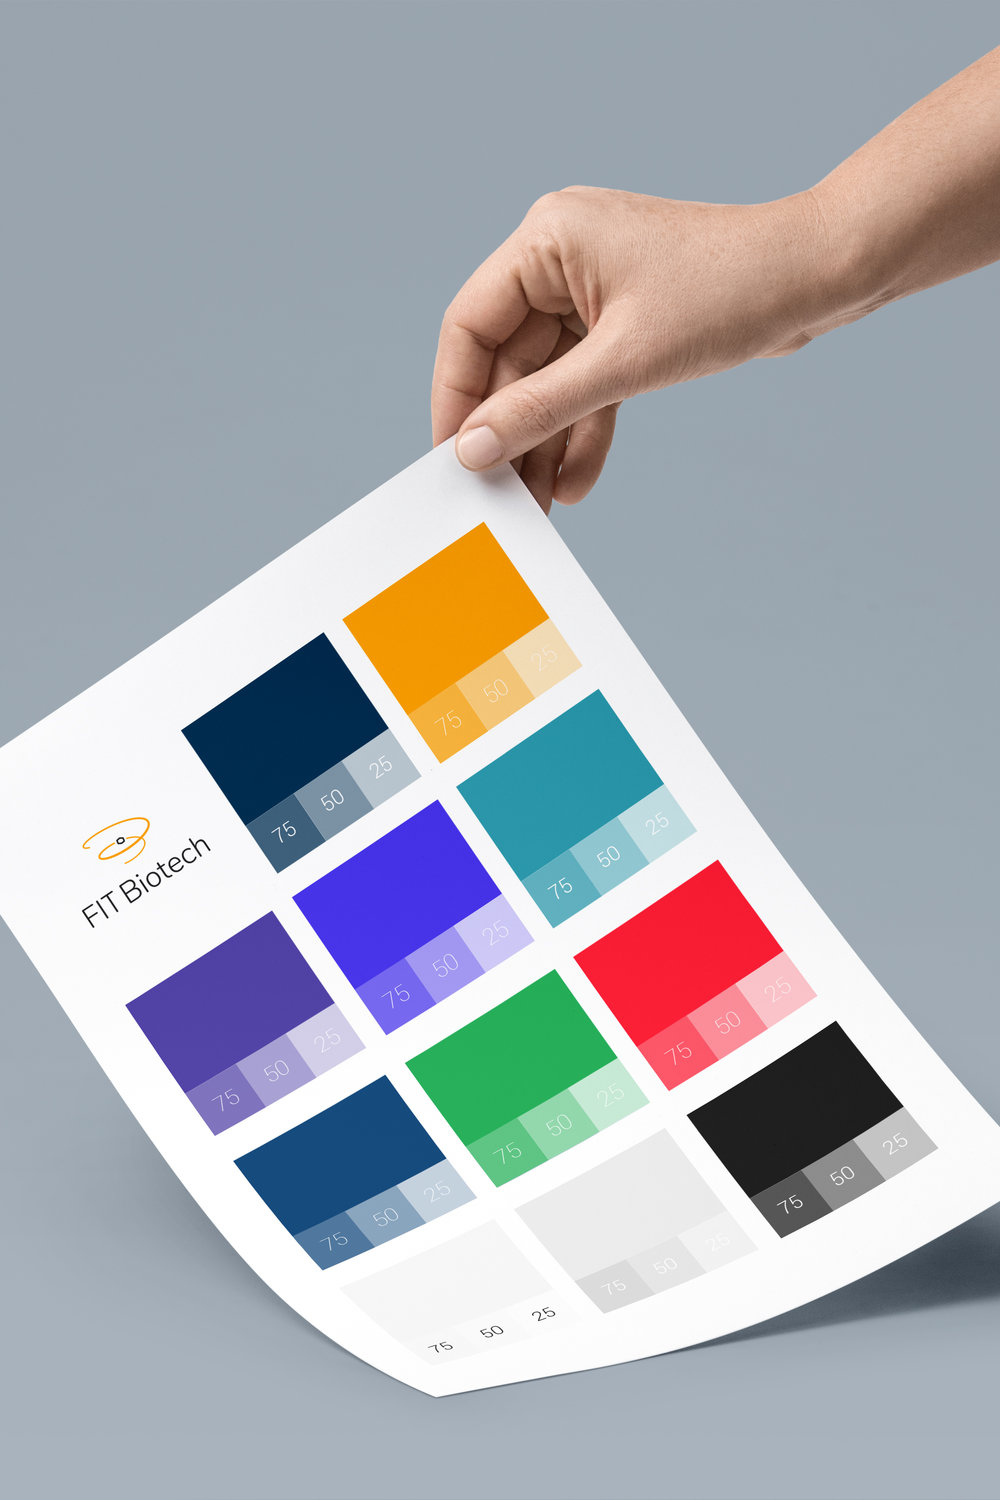 FITbiotech_colors.jpg